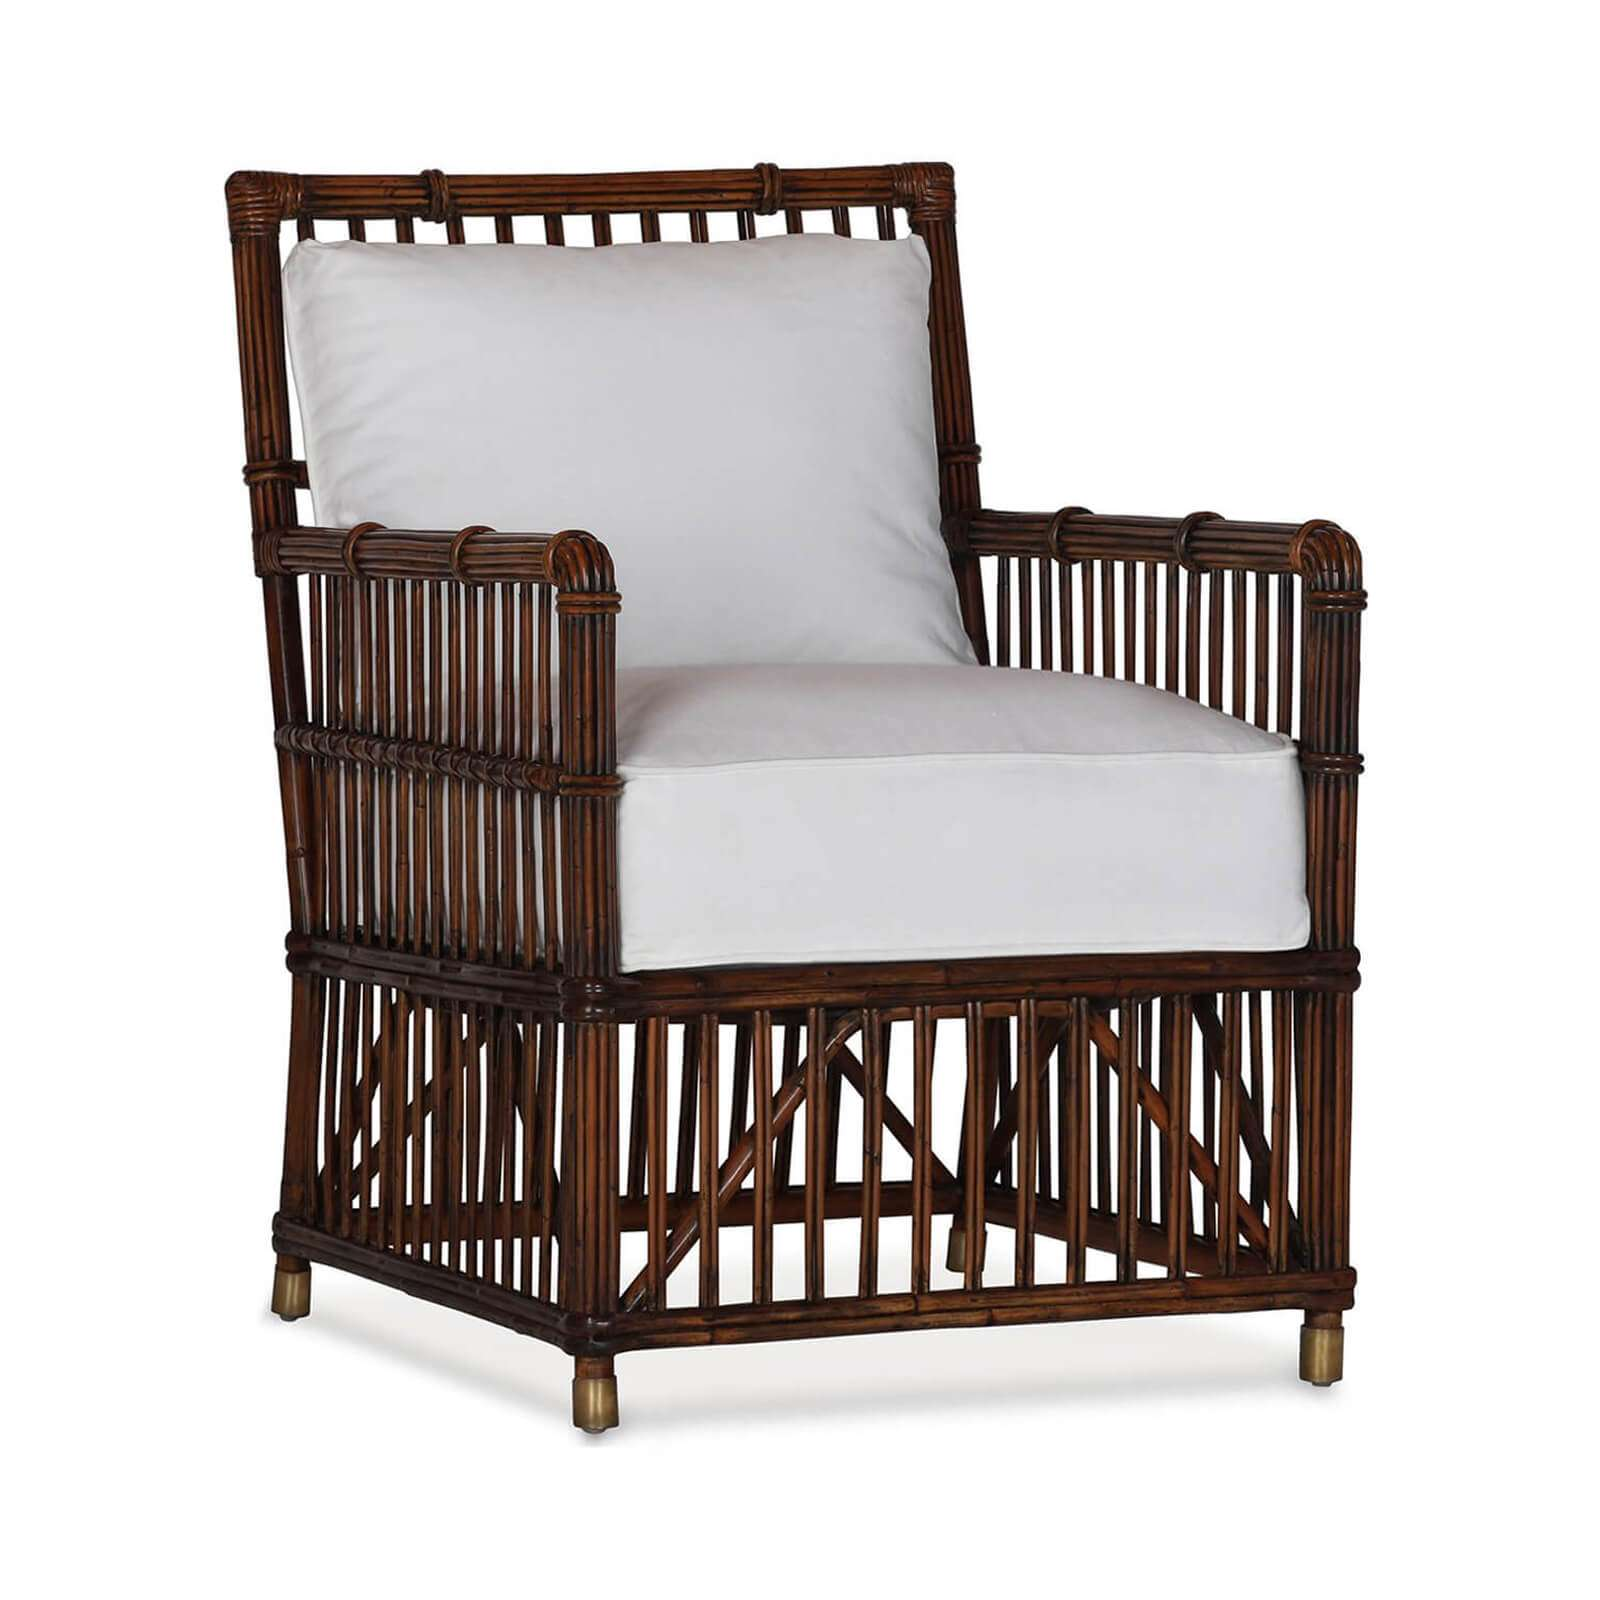 BUNGALOW ARM CHAIR